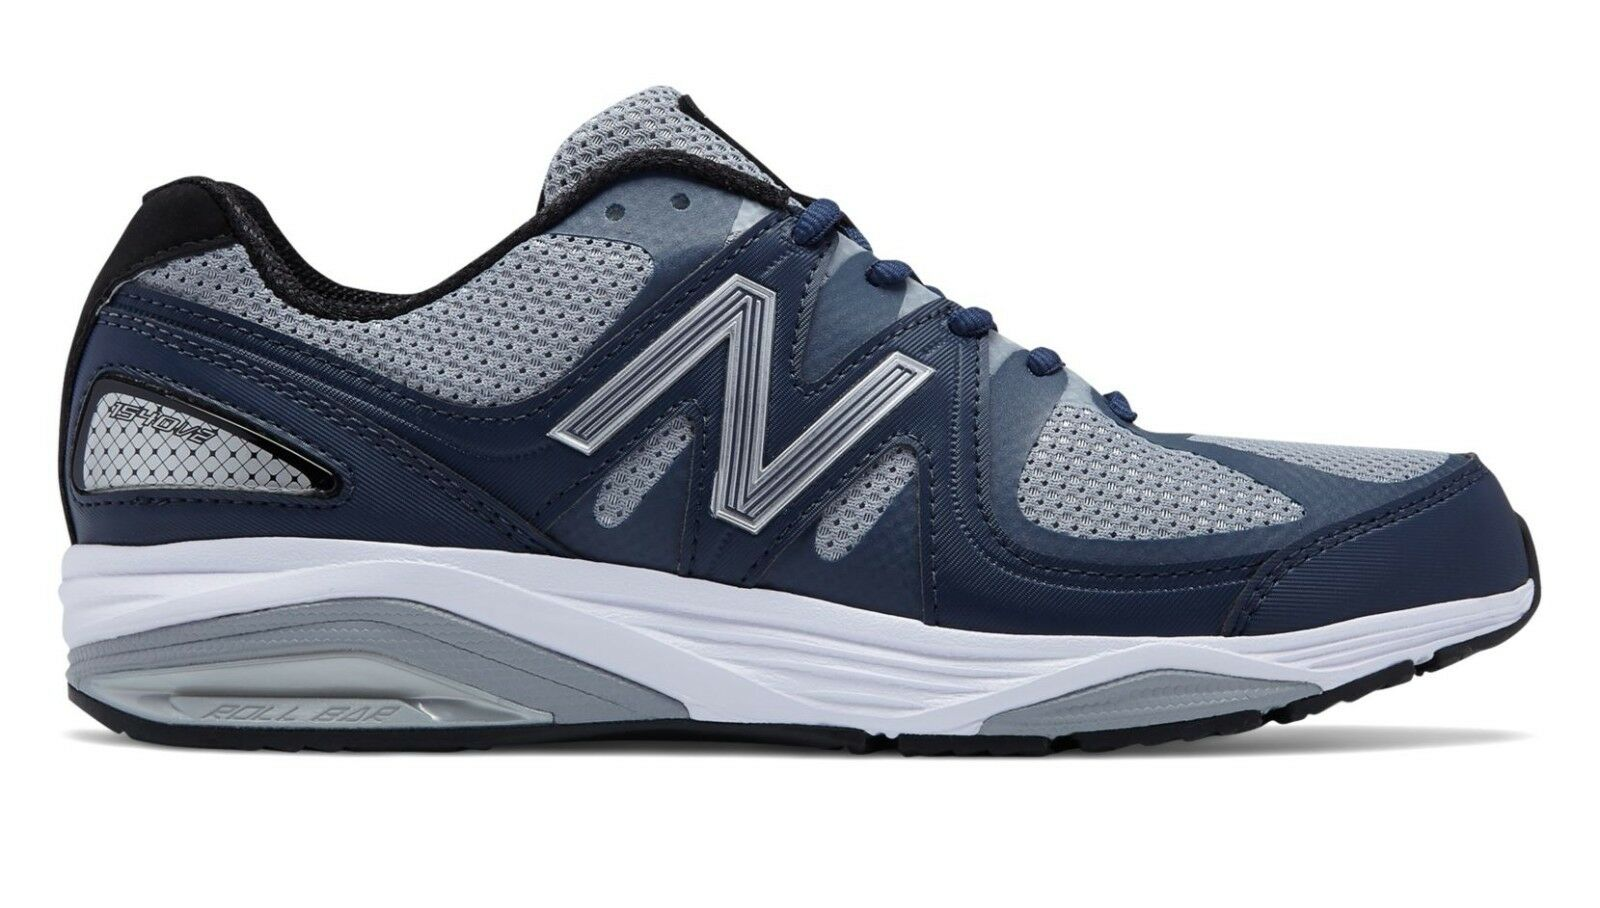 best service 6103f 11168 New Balance M1540NV2 M1540NV2 M1540NV2 Men s 1540v2 Navy Gray Overpronation  Support Running Shoes 0818ee